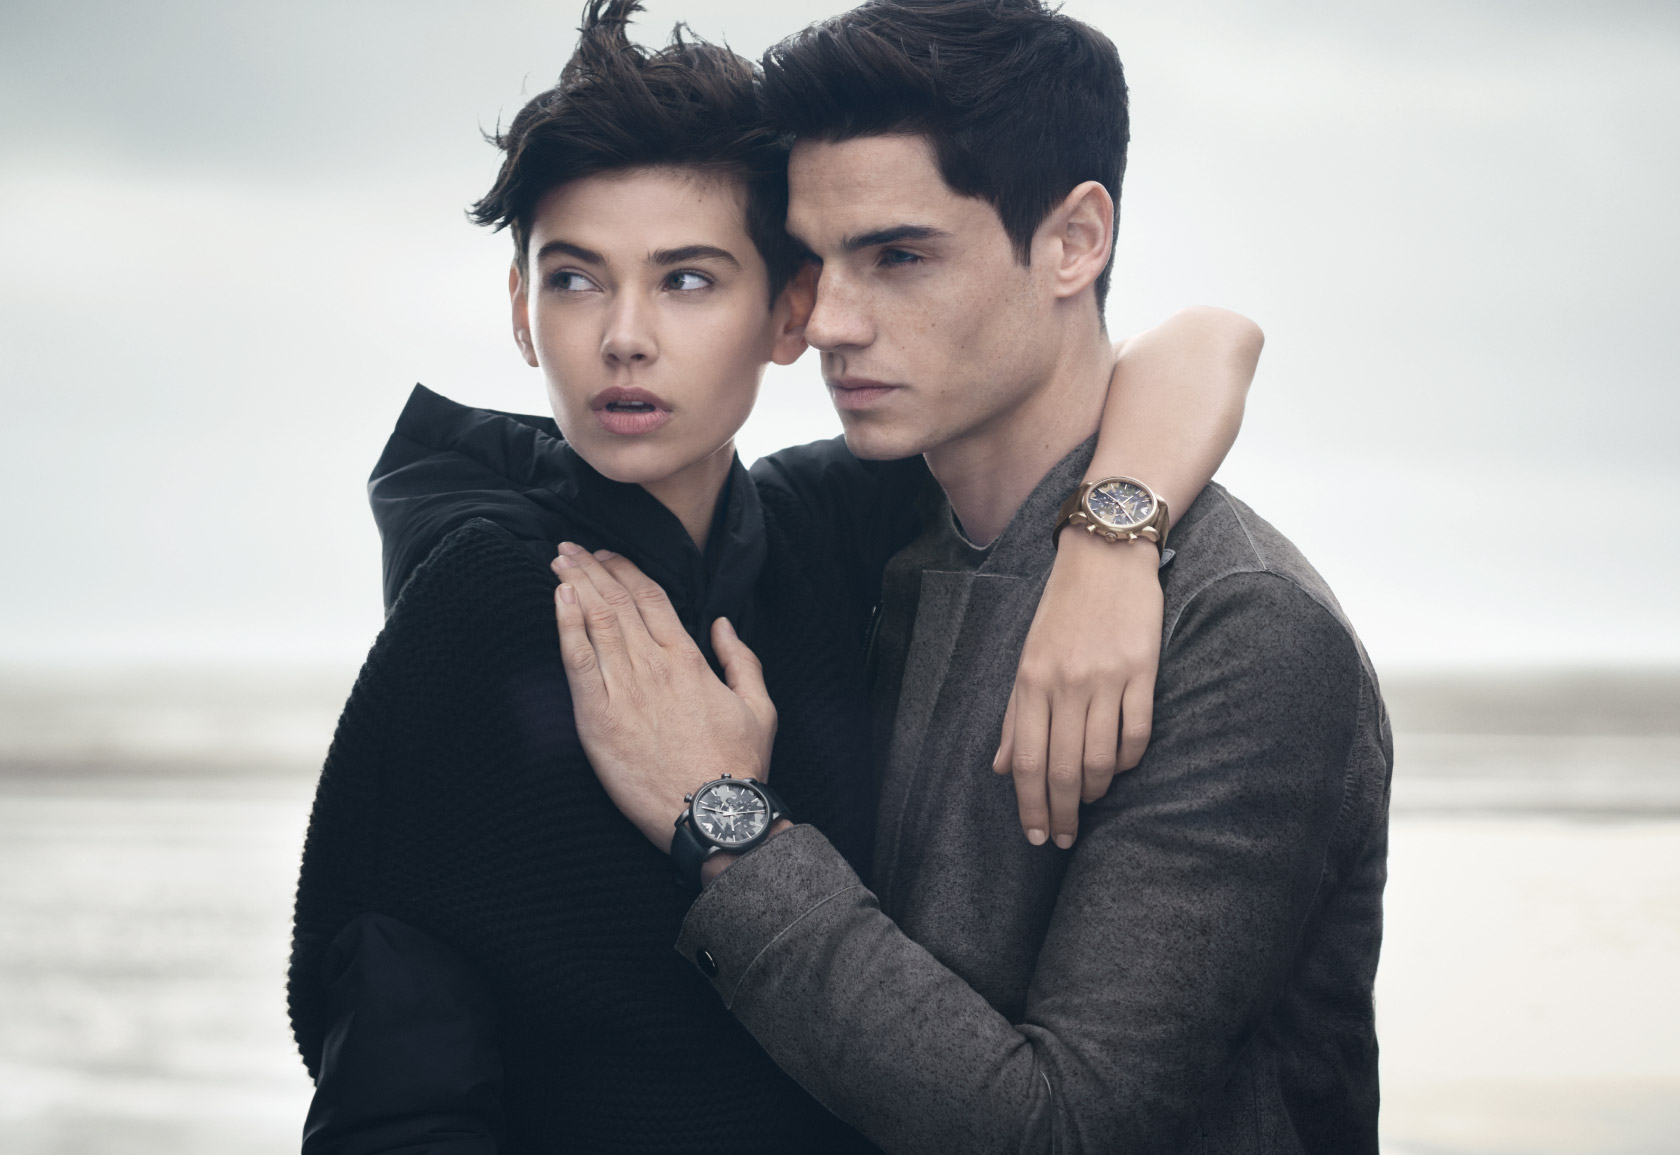 Emporio -Armani -Fall/Winter- 2014 -Watches -& -Jewelry- Campaign